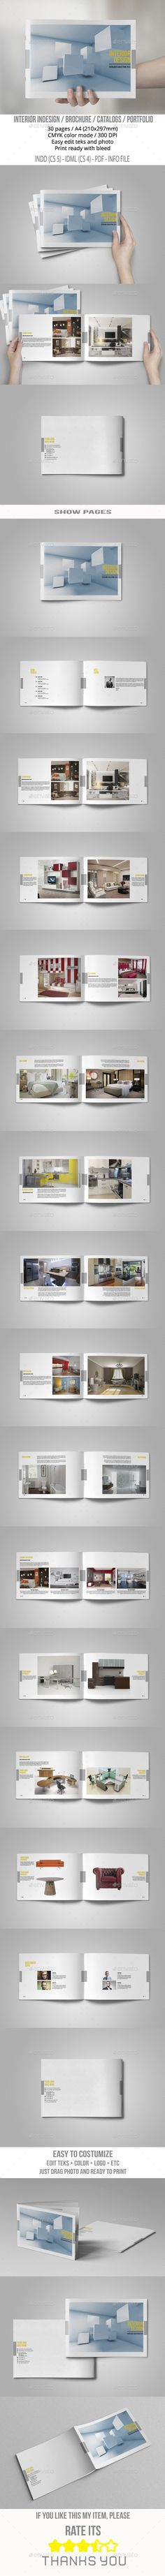 Catalogs Interior Brochure